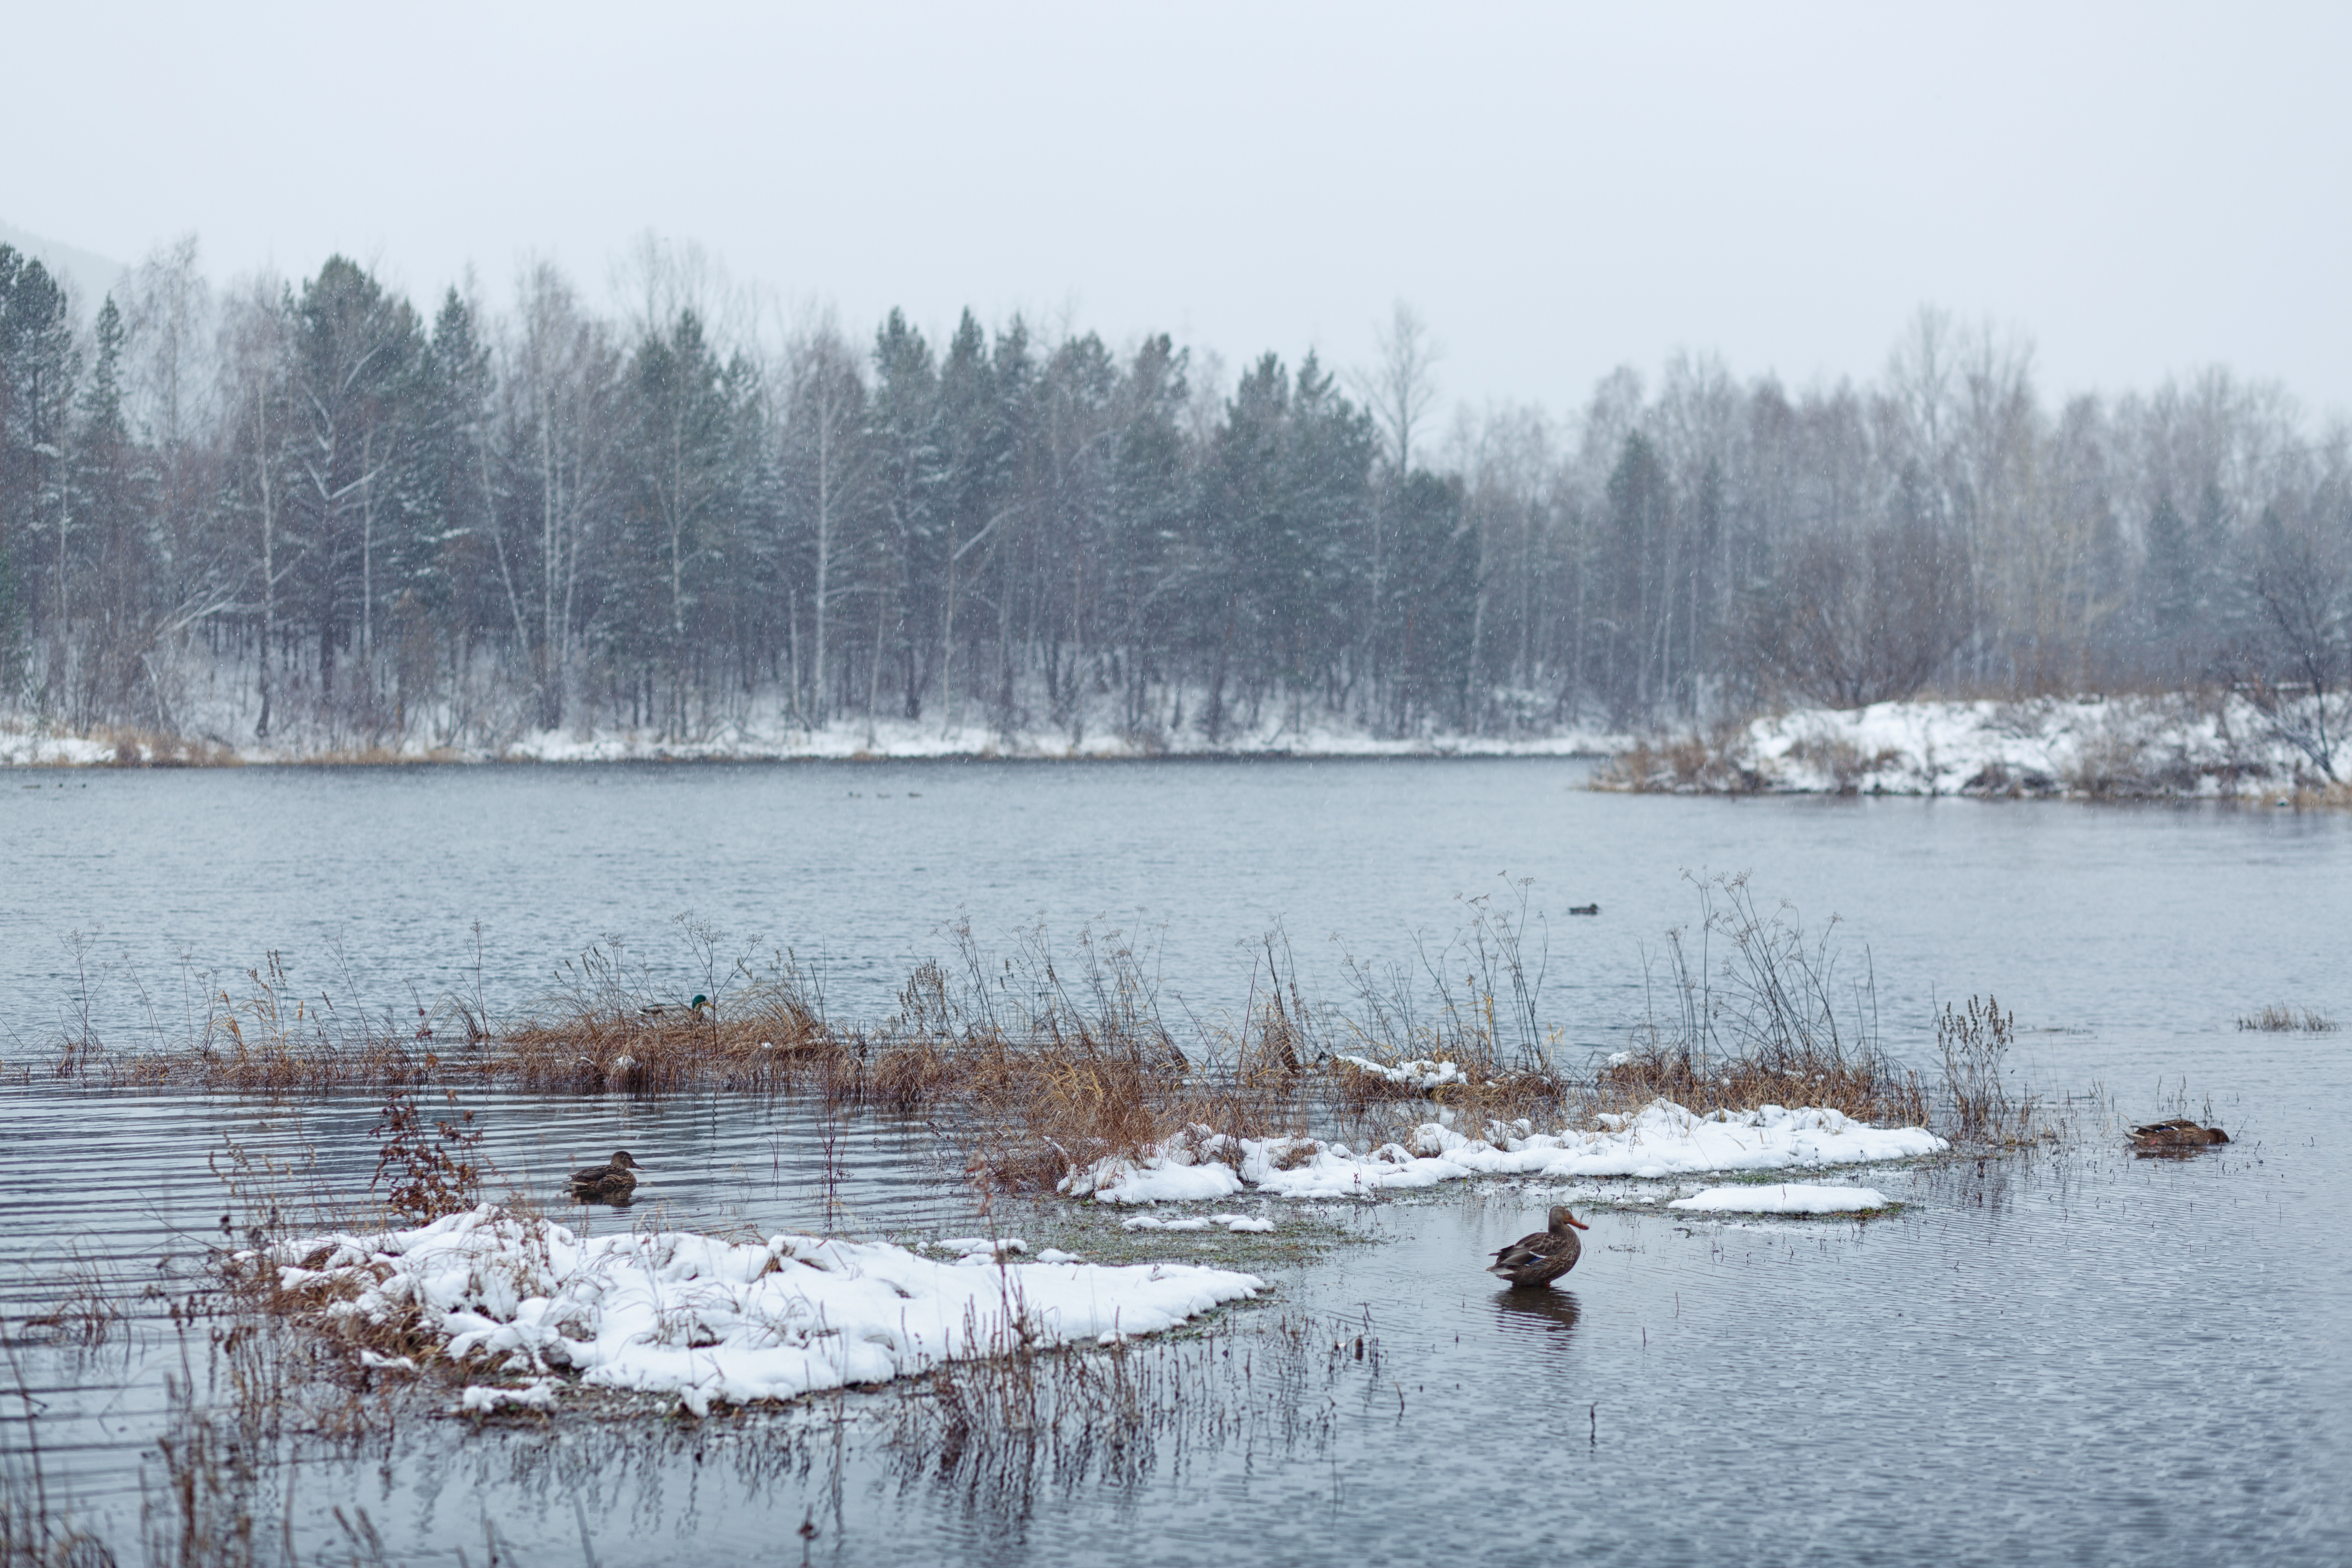 Ducks swimming in water of a snowy pond.